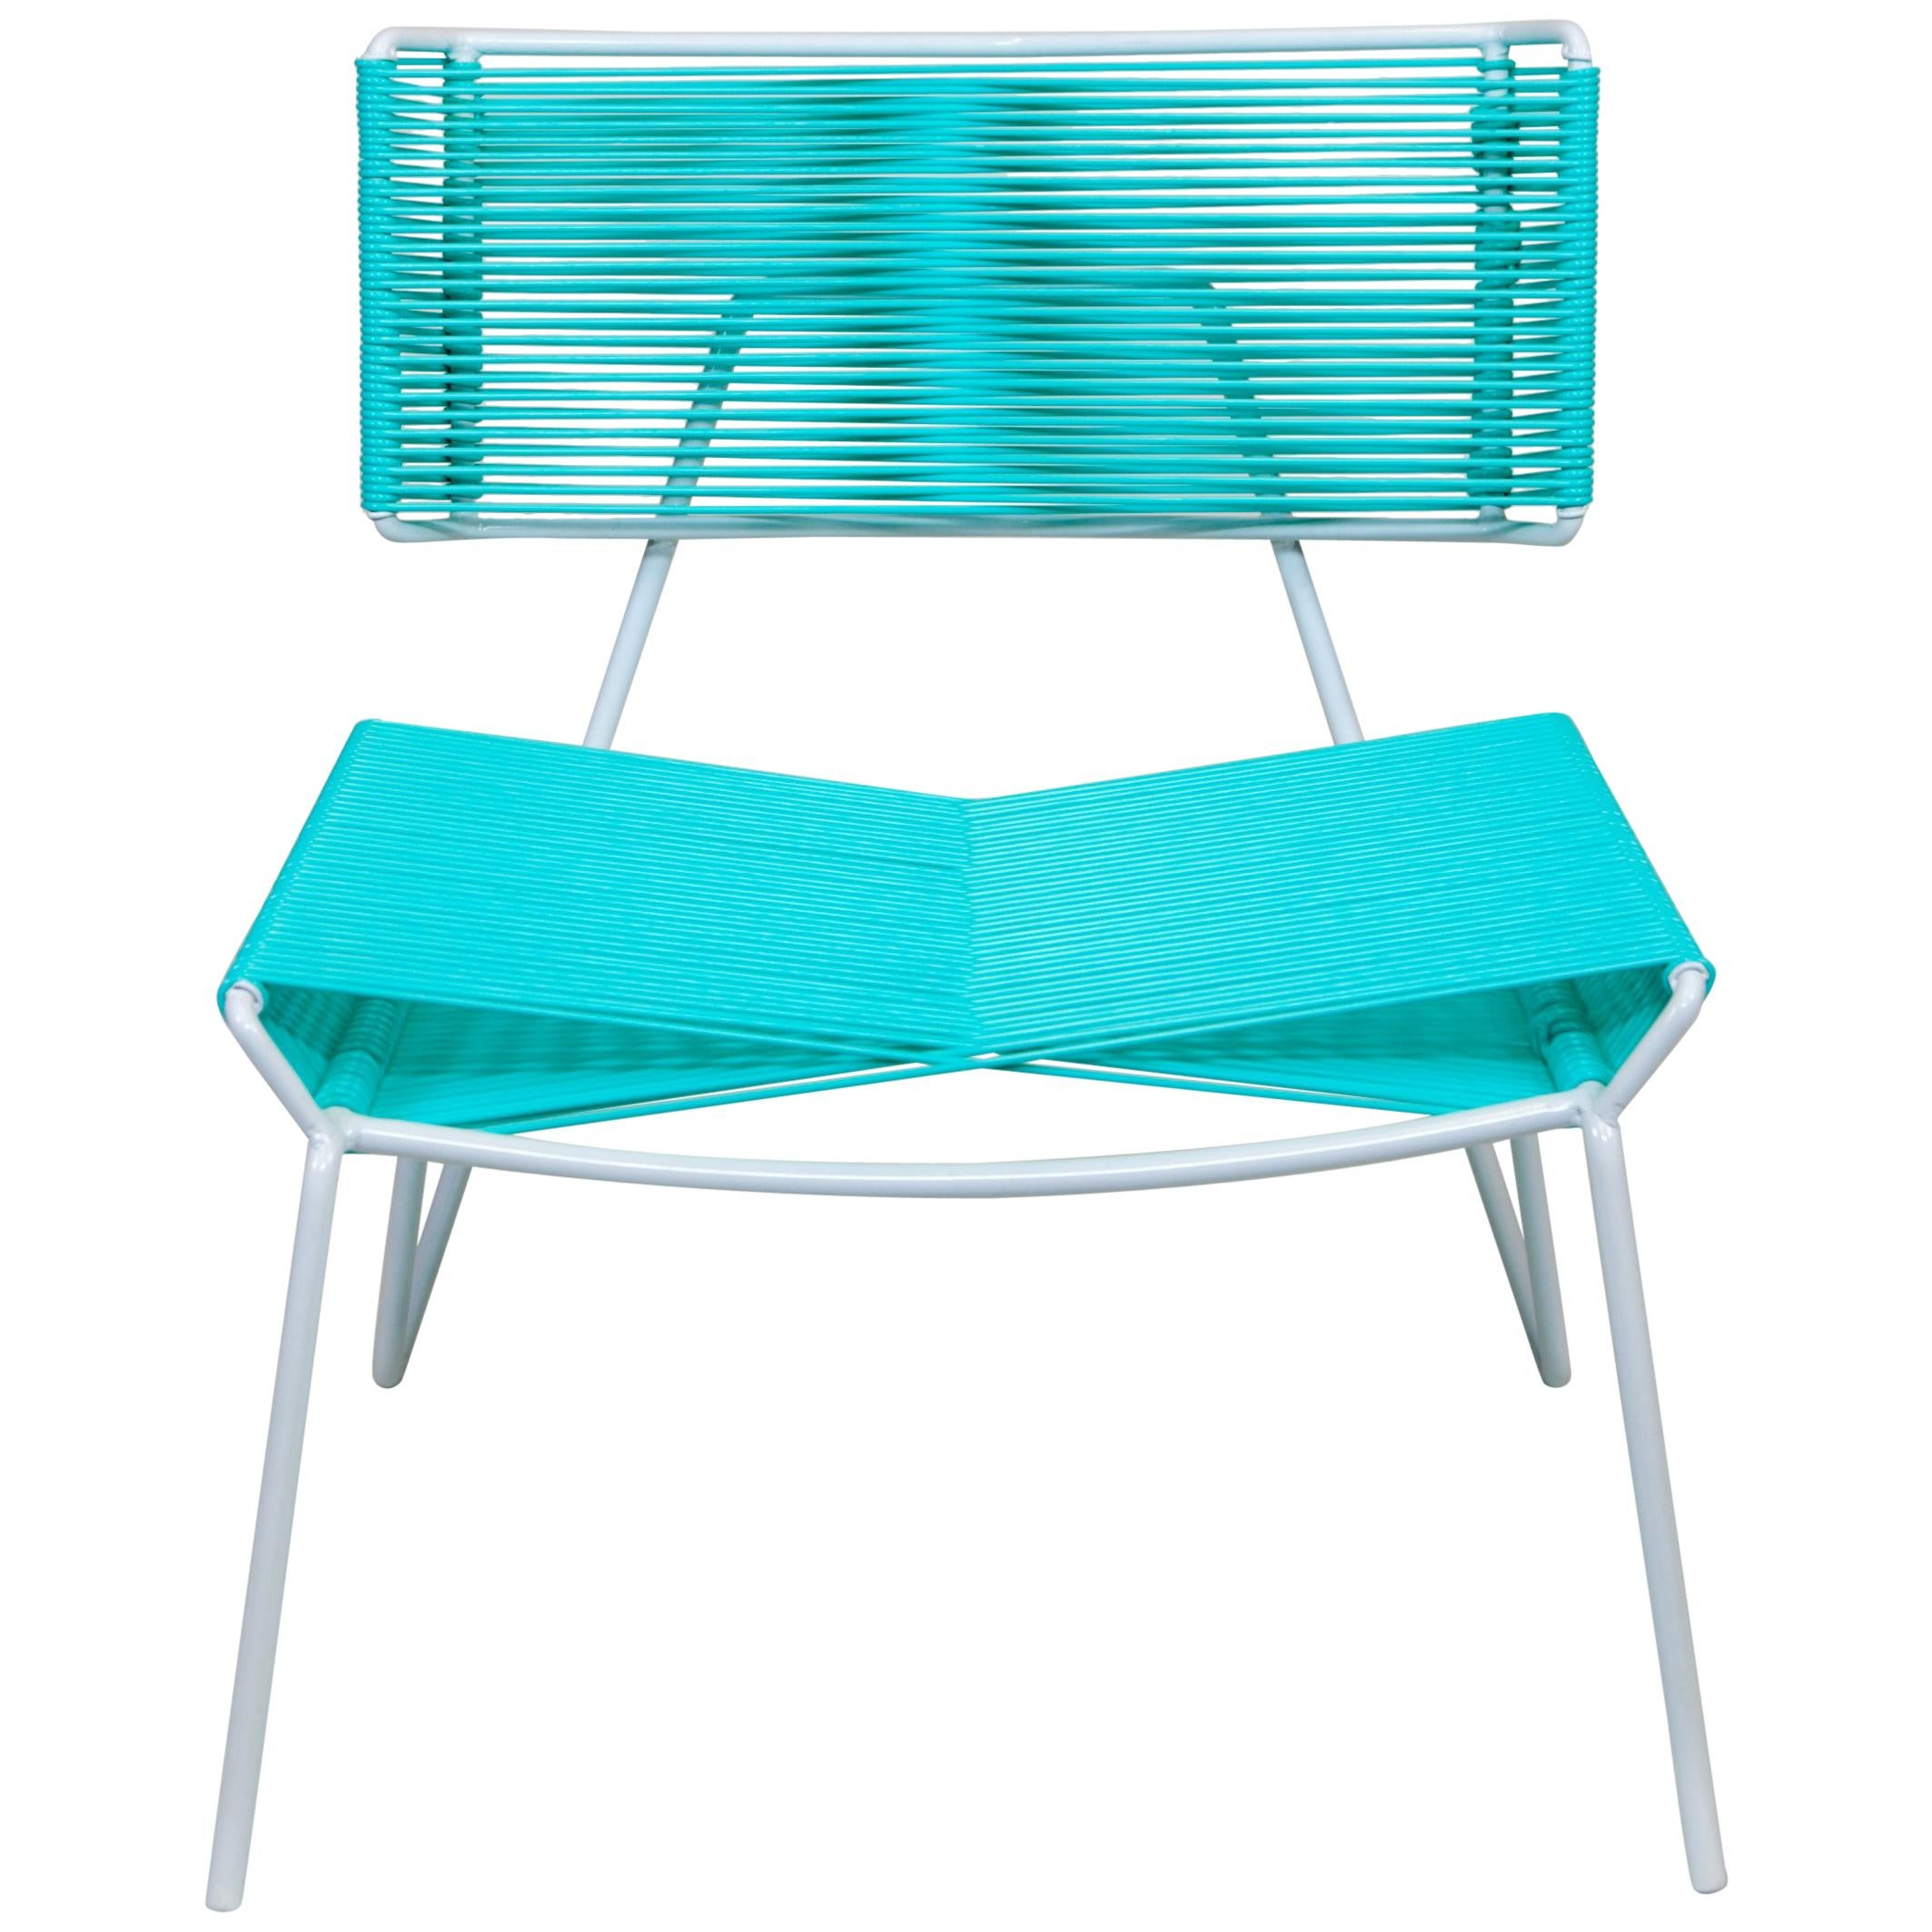 Handmade Midcentury Style Outdoor Lounge Chair, White with Mint PVC, In Stock